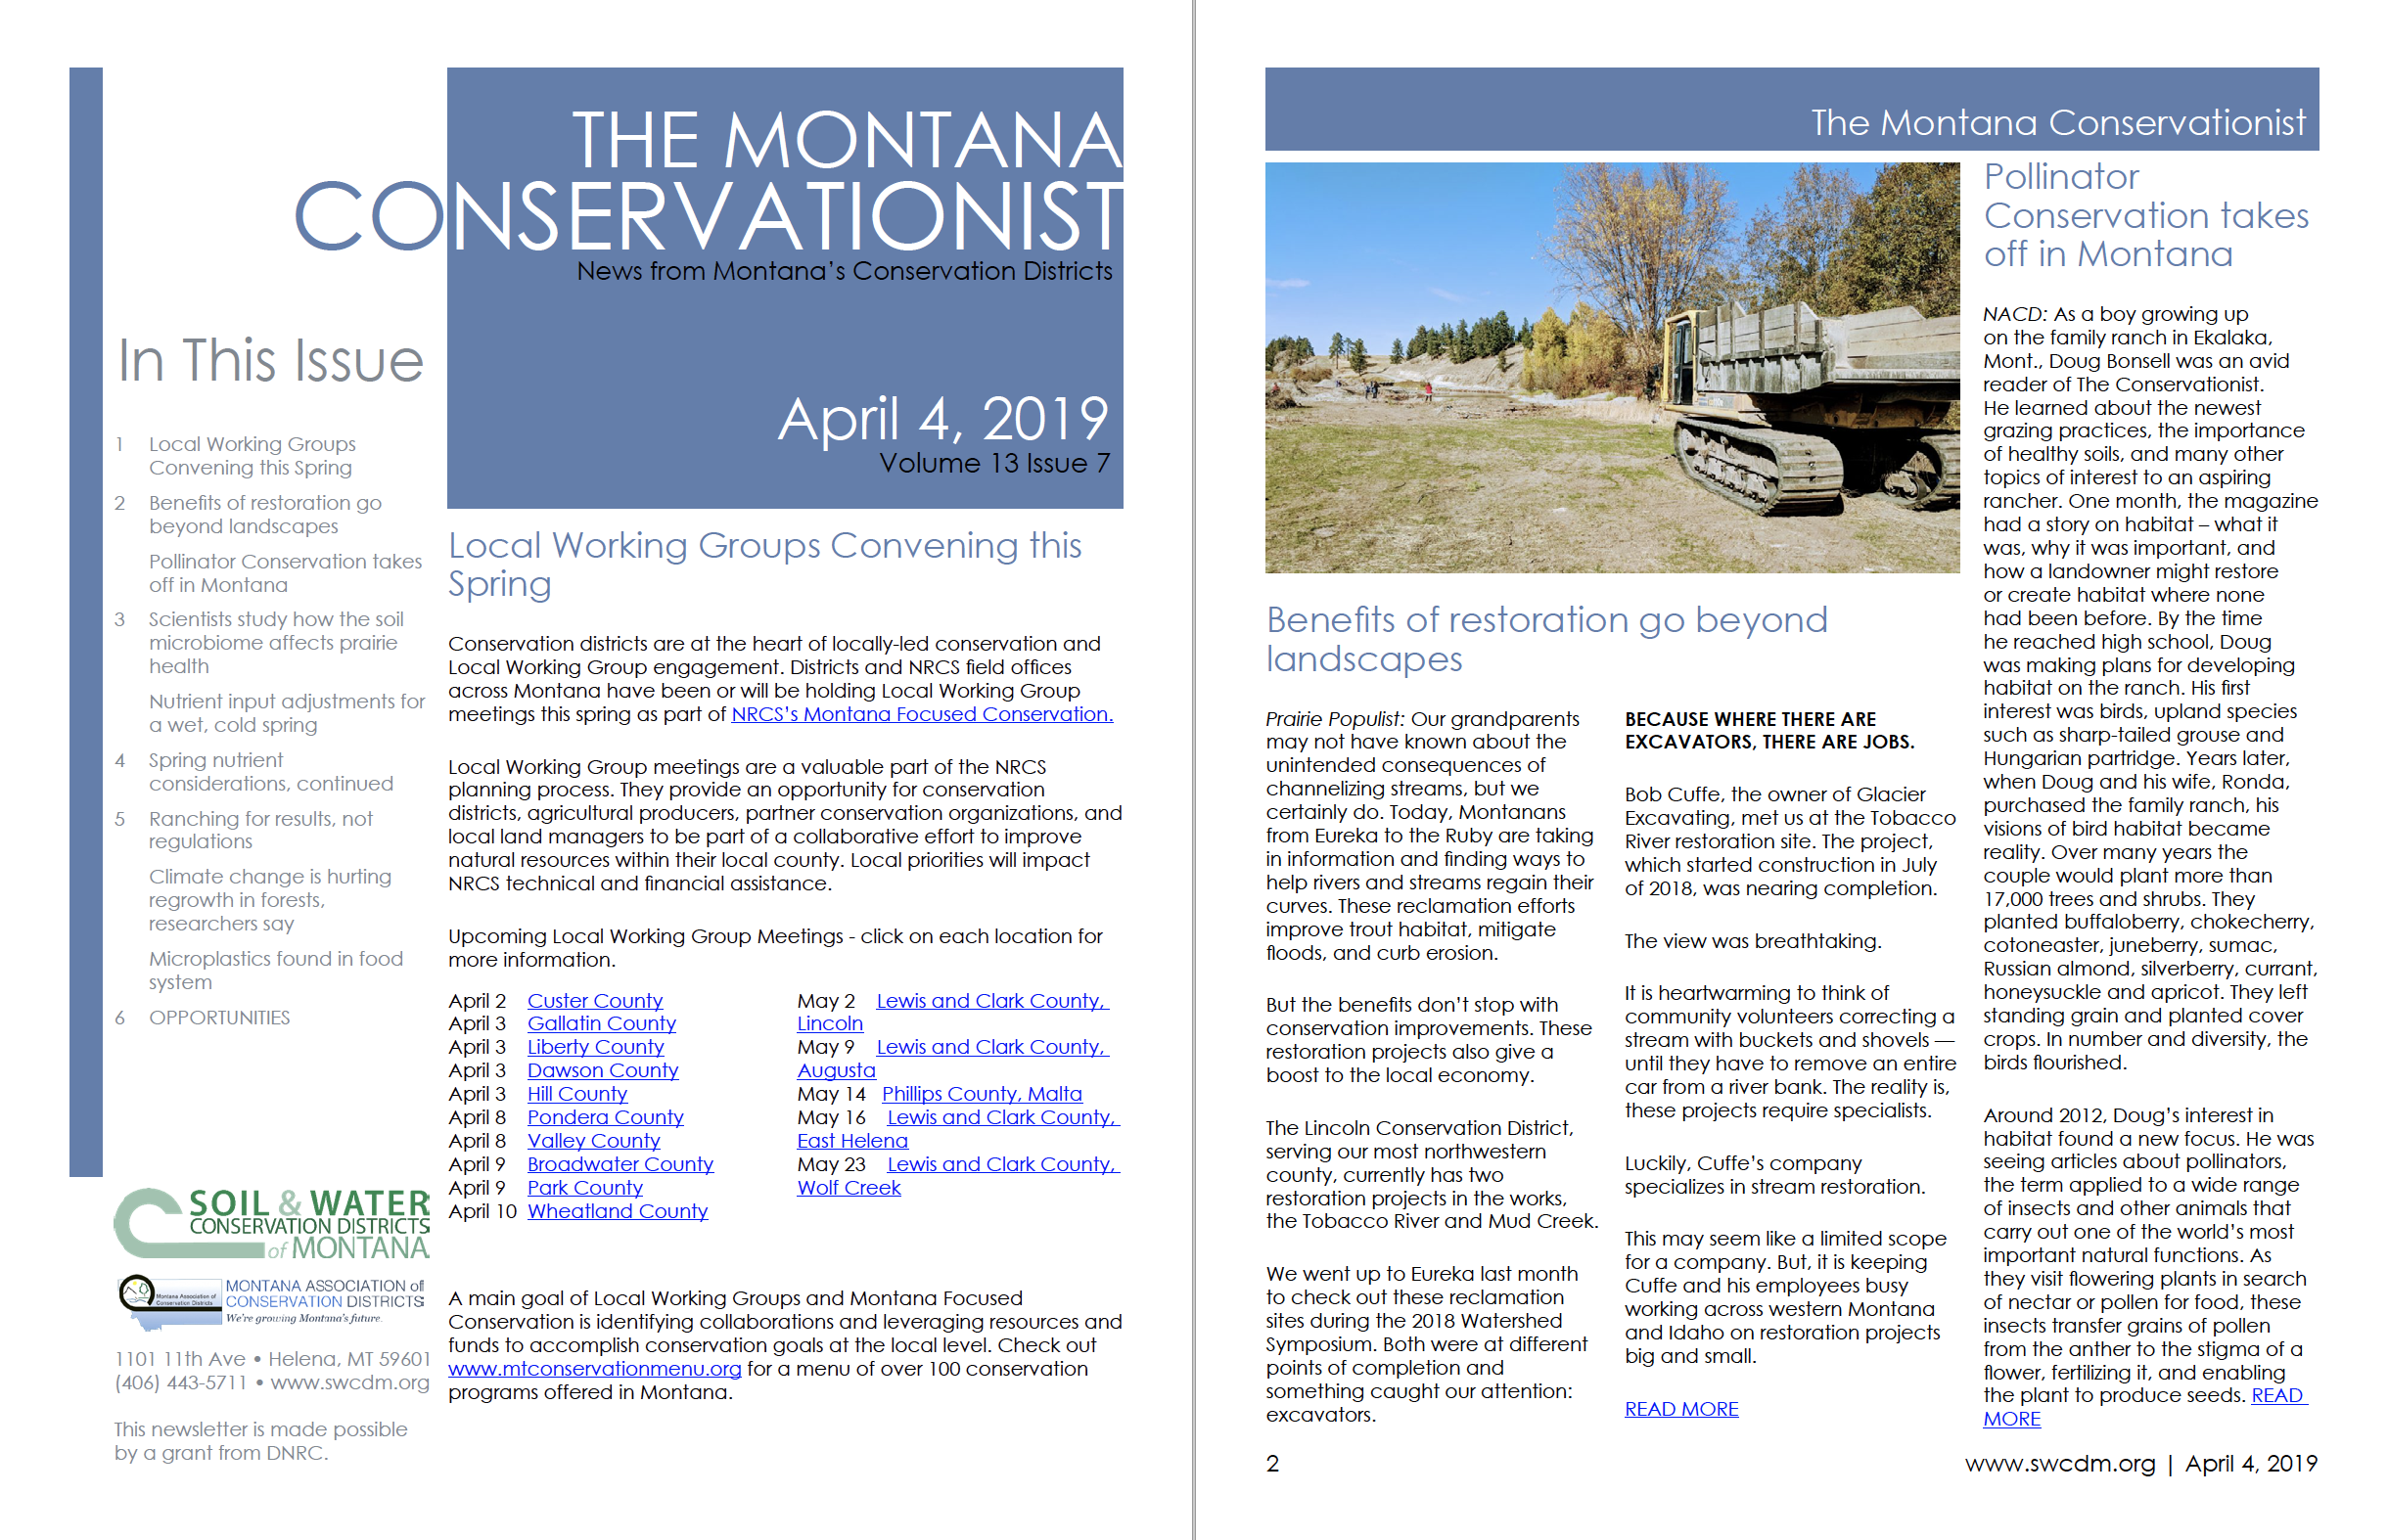 The Montana Conservationist April 4